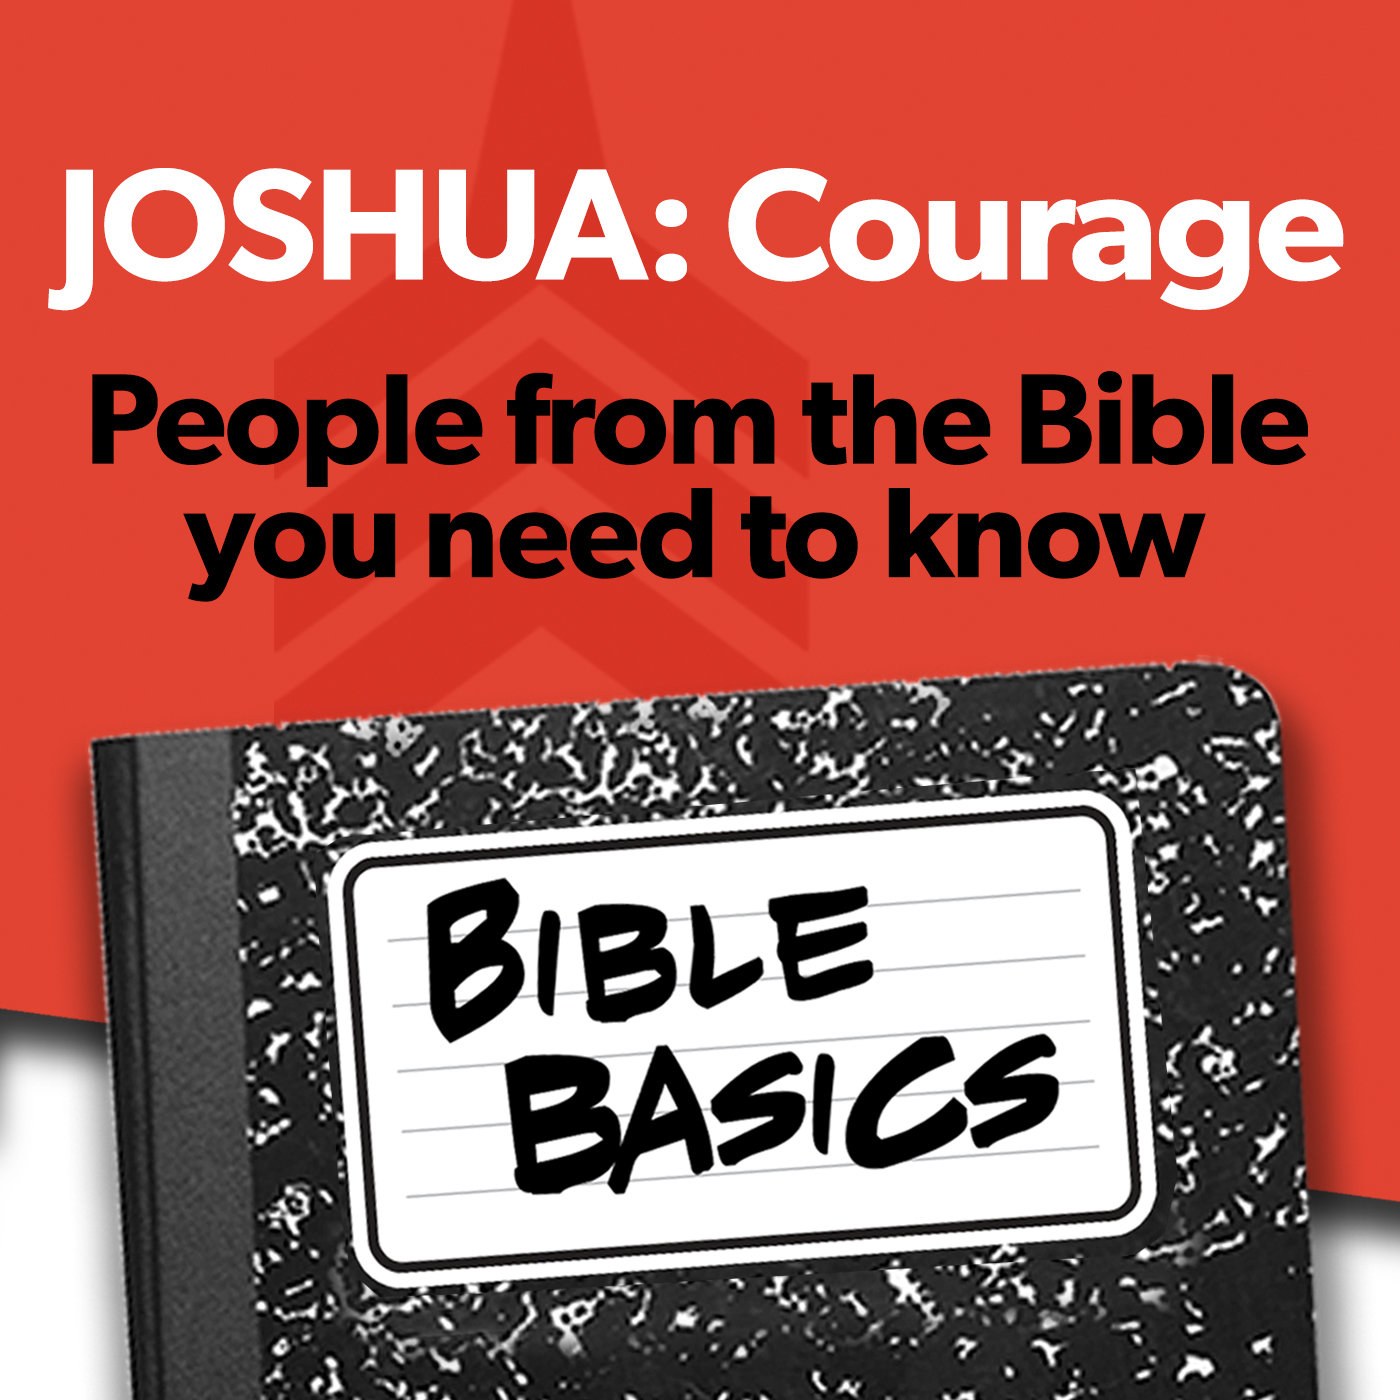 Bible Basics_04_JOSHUA COURAGE Basics 1400sq (1).jpg